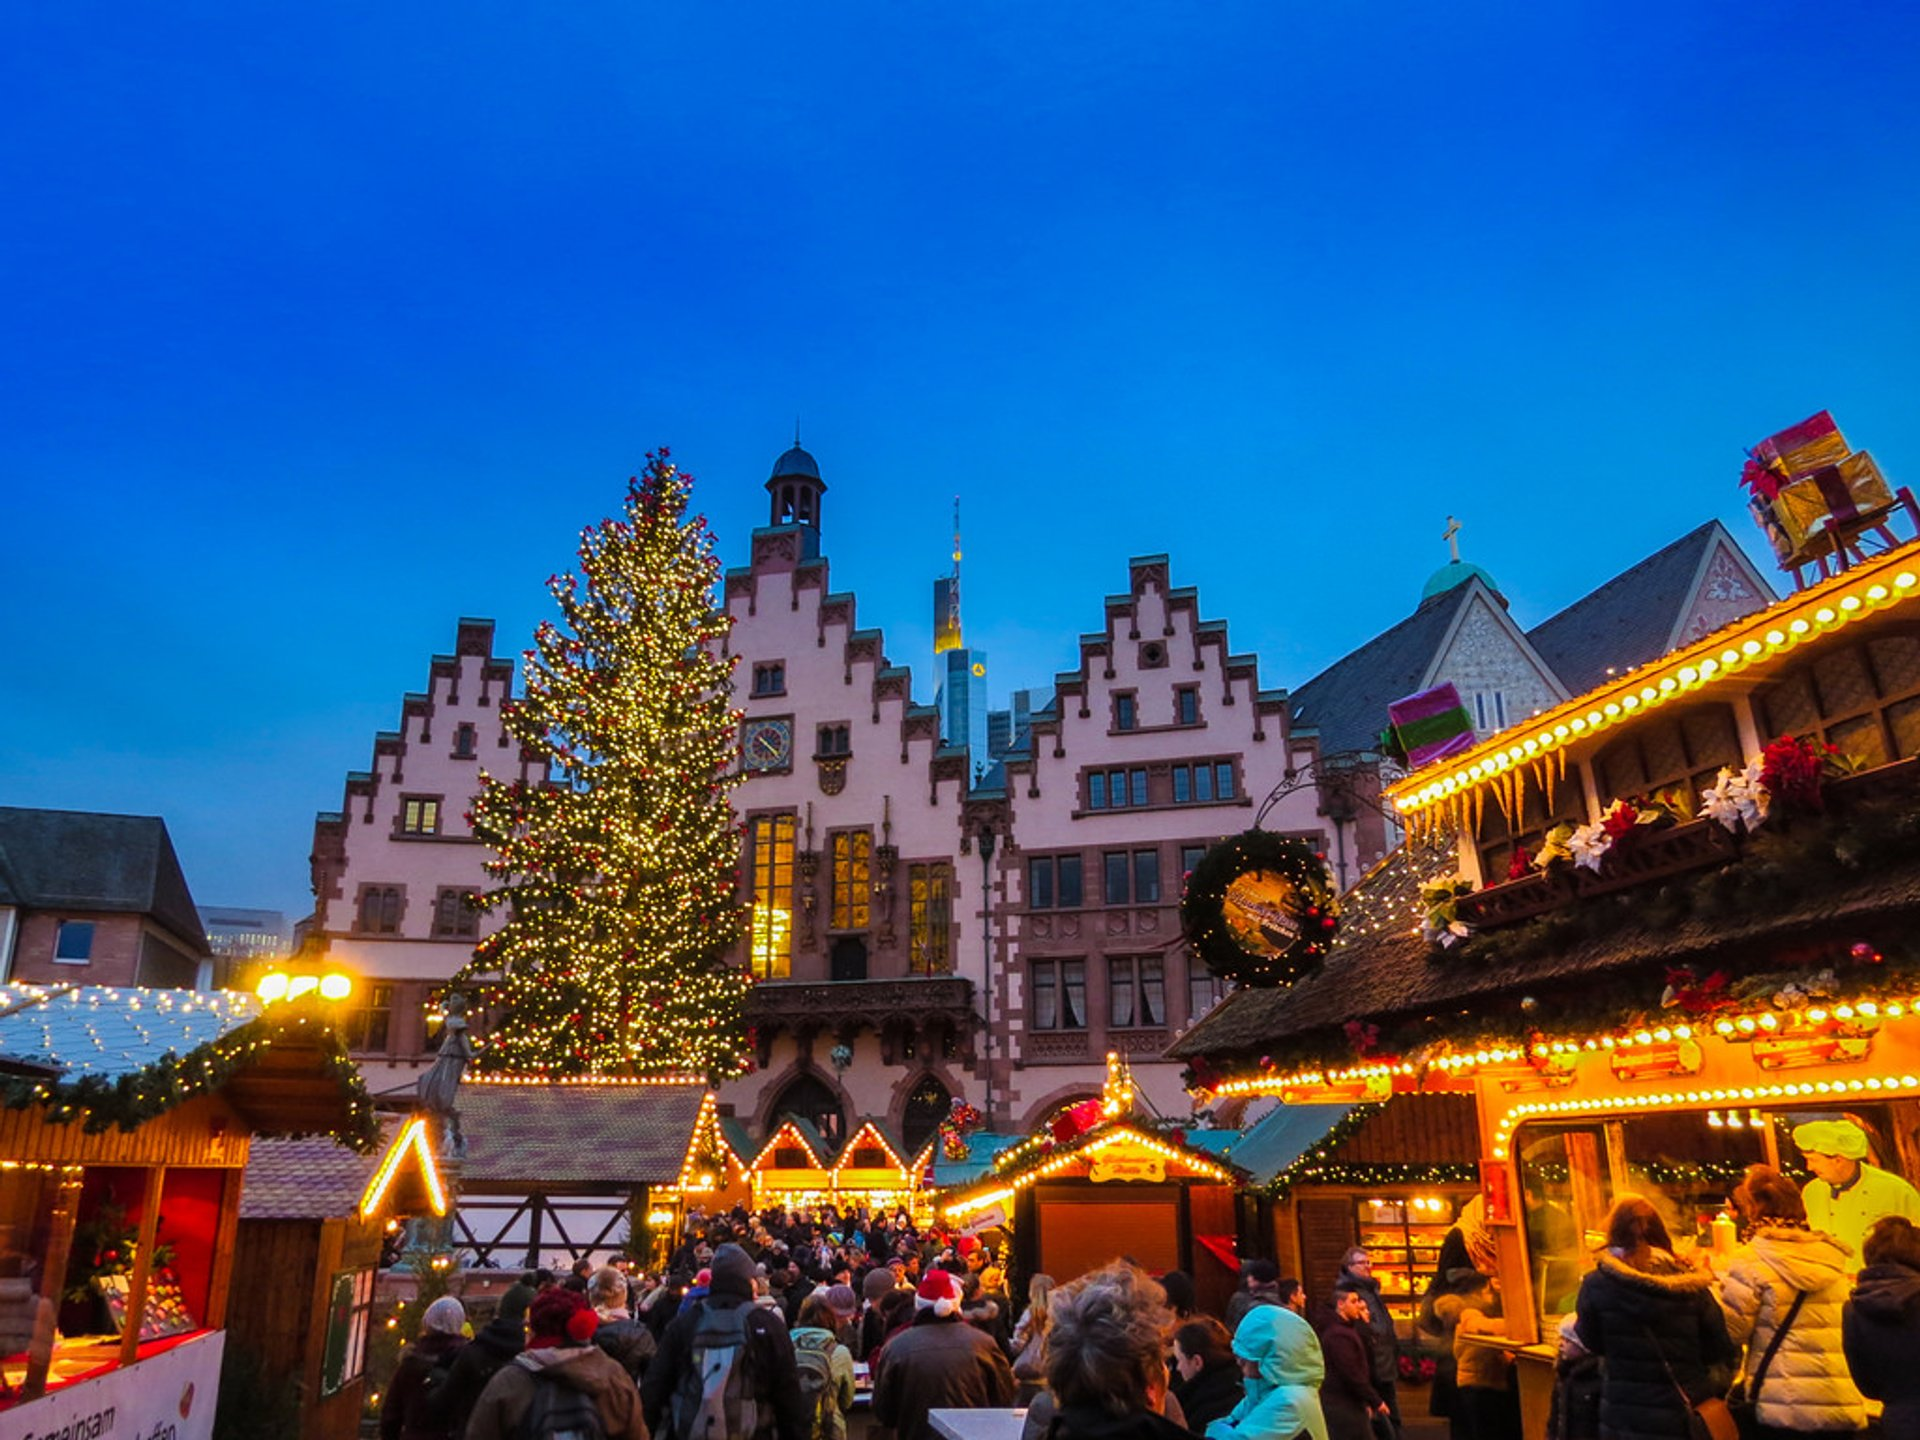 Christmas Markets In Germany 2020 Dates Christmas Markets 2020 in Germany   Dates